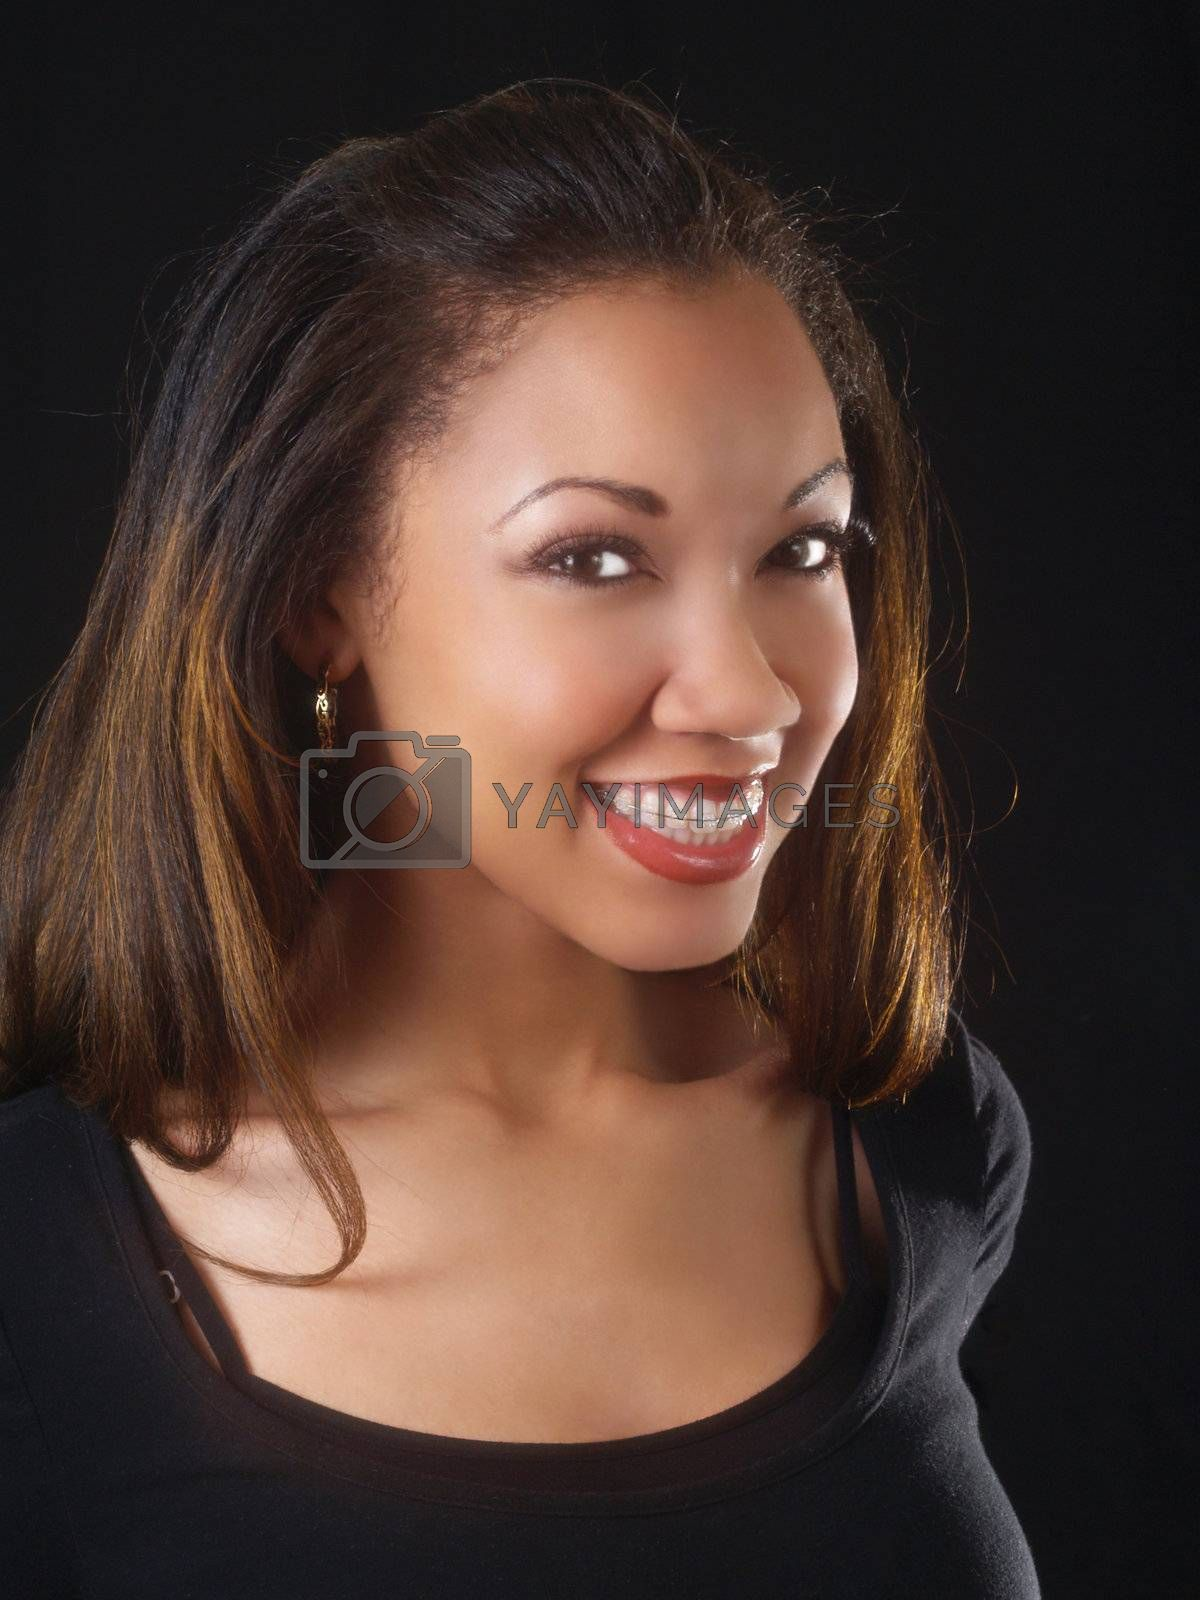 Big smile with braces on young black woman